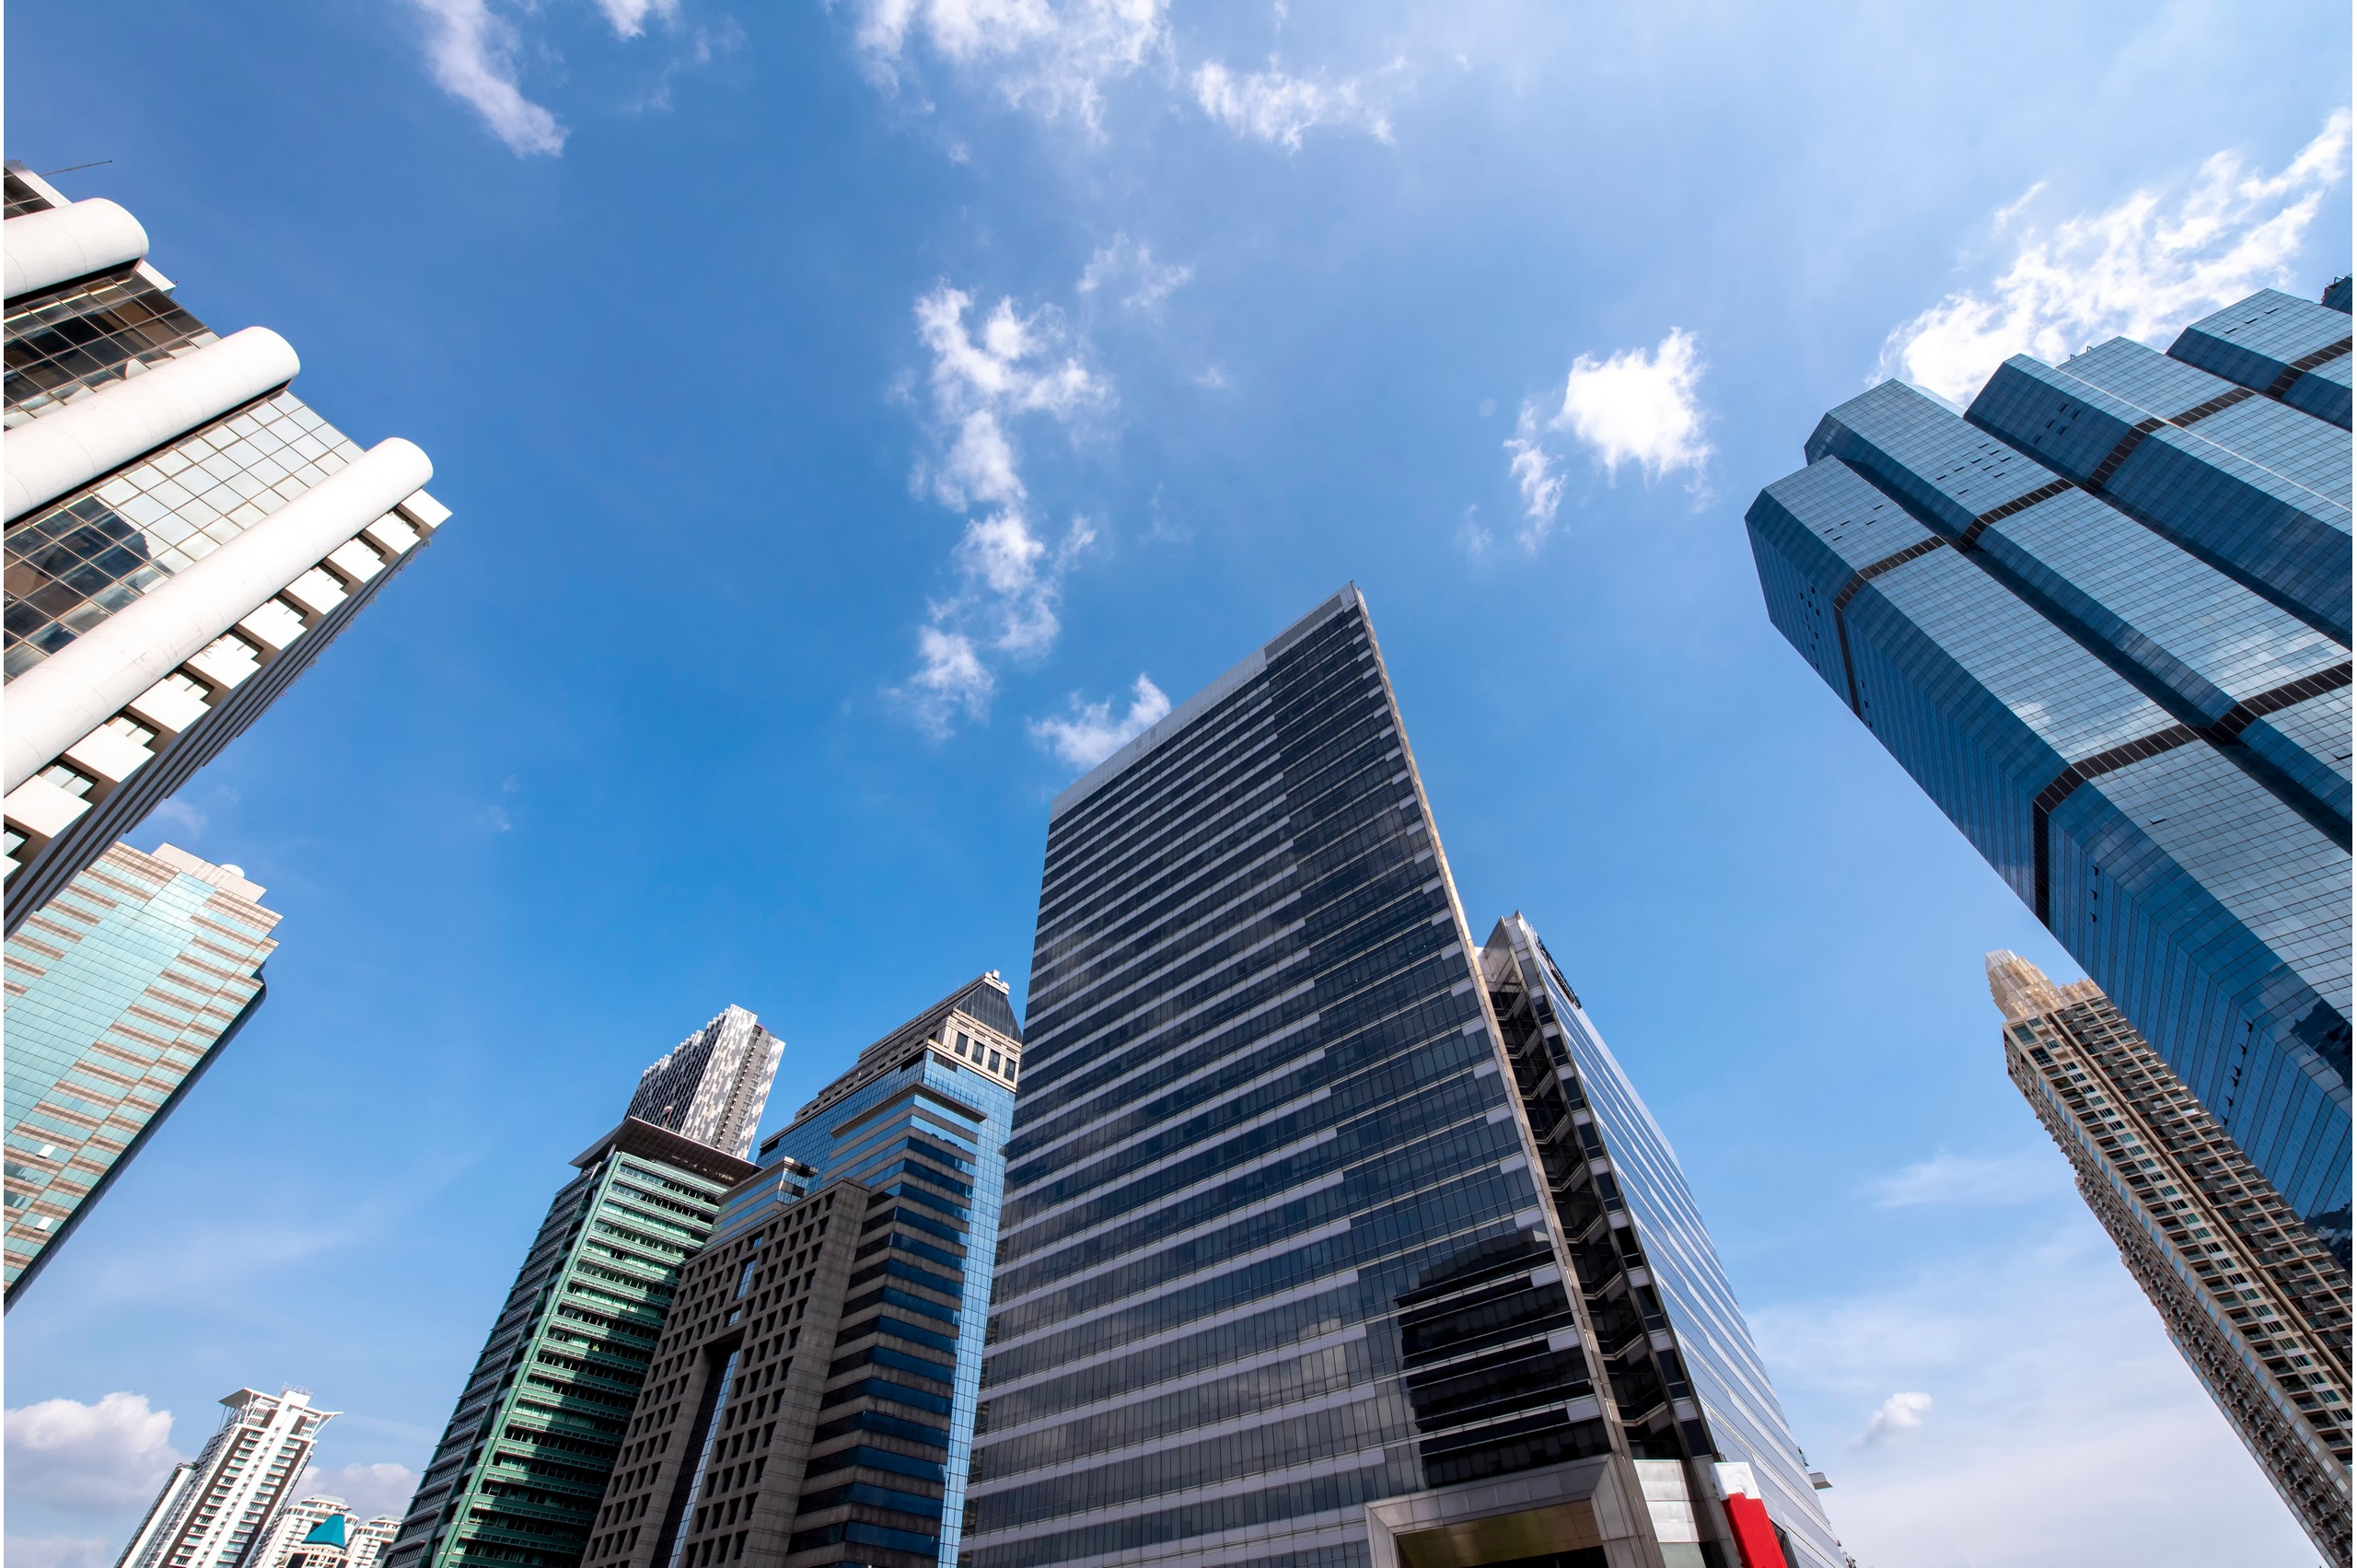 Property News: While repo rate breathes life into residential property, commercial sector remains subdued